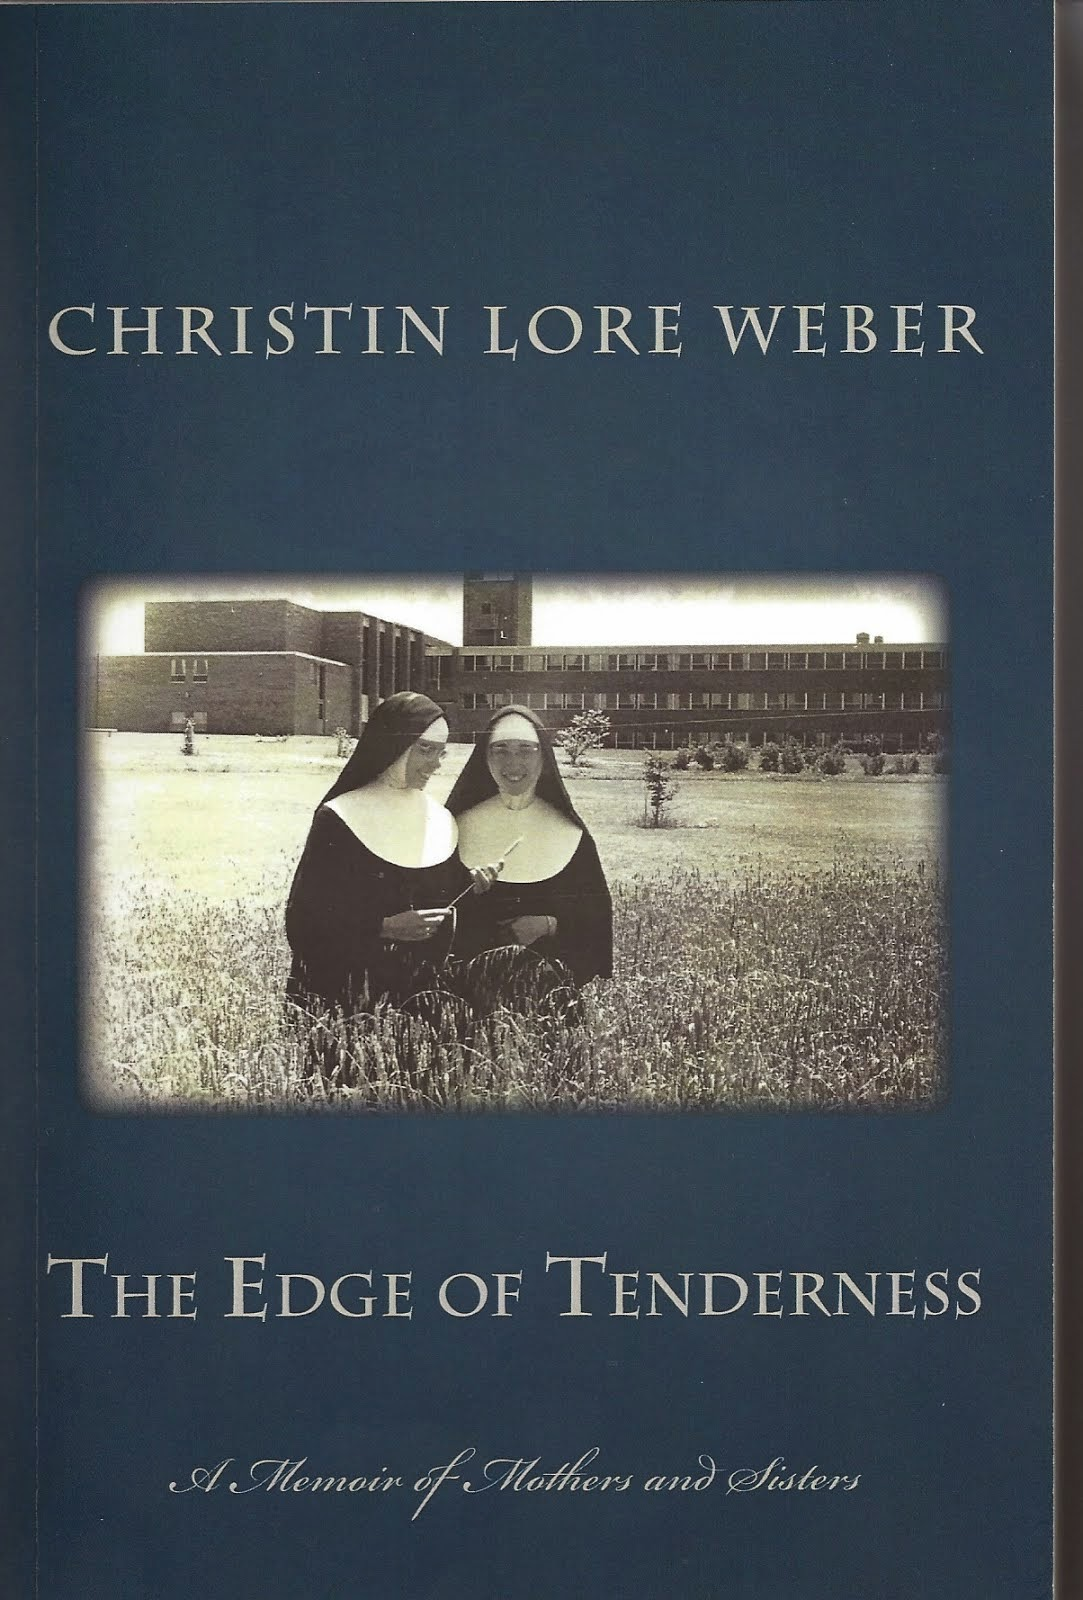 THE EDGE OF TENDERNESS